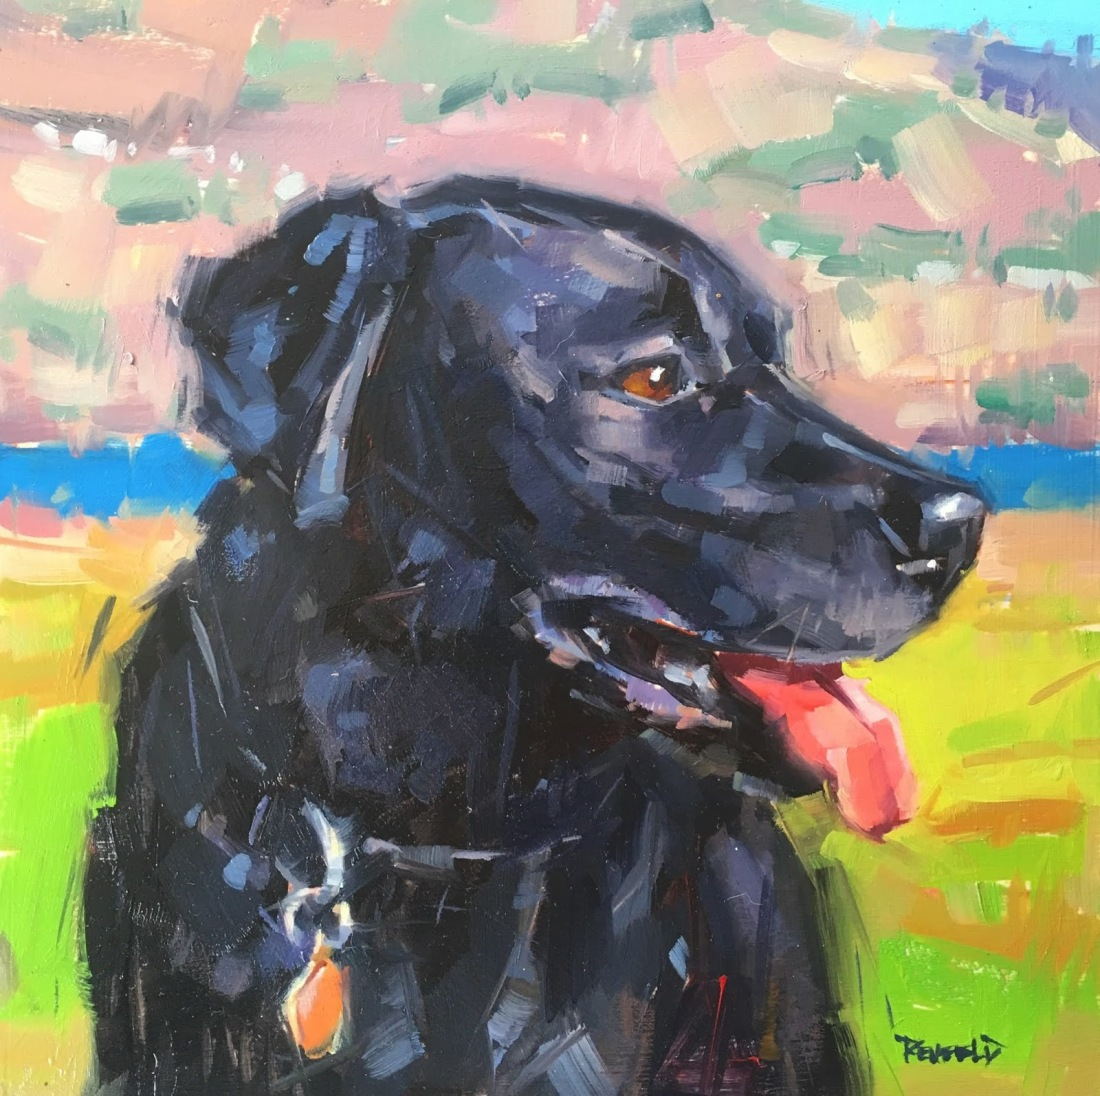 Brier pet 10x10 painting.jpg